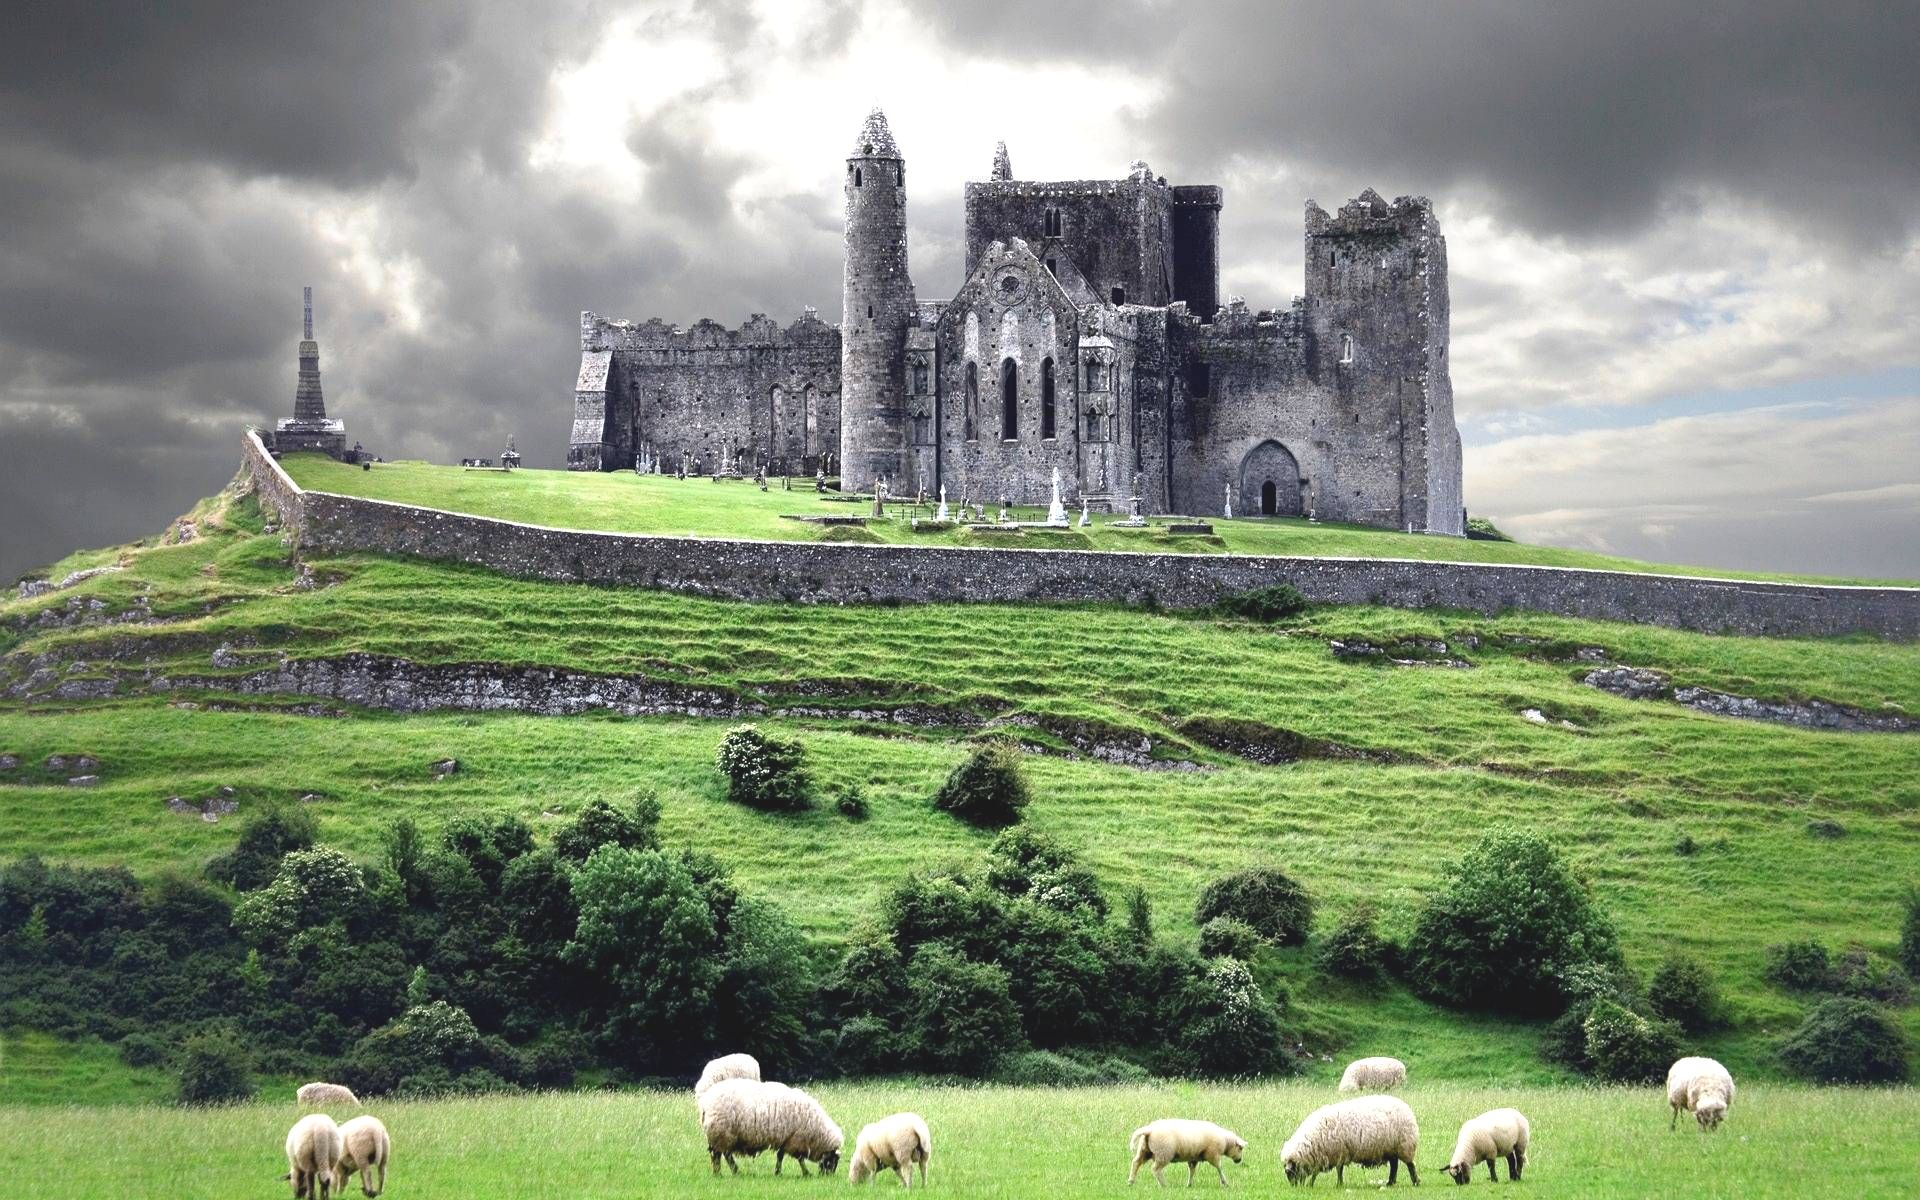 Castle in Eire with Sheep Grazing in a Field